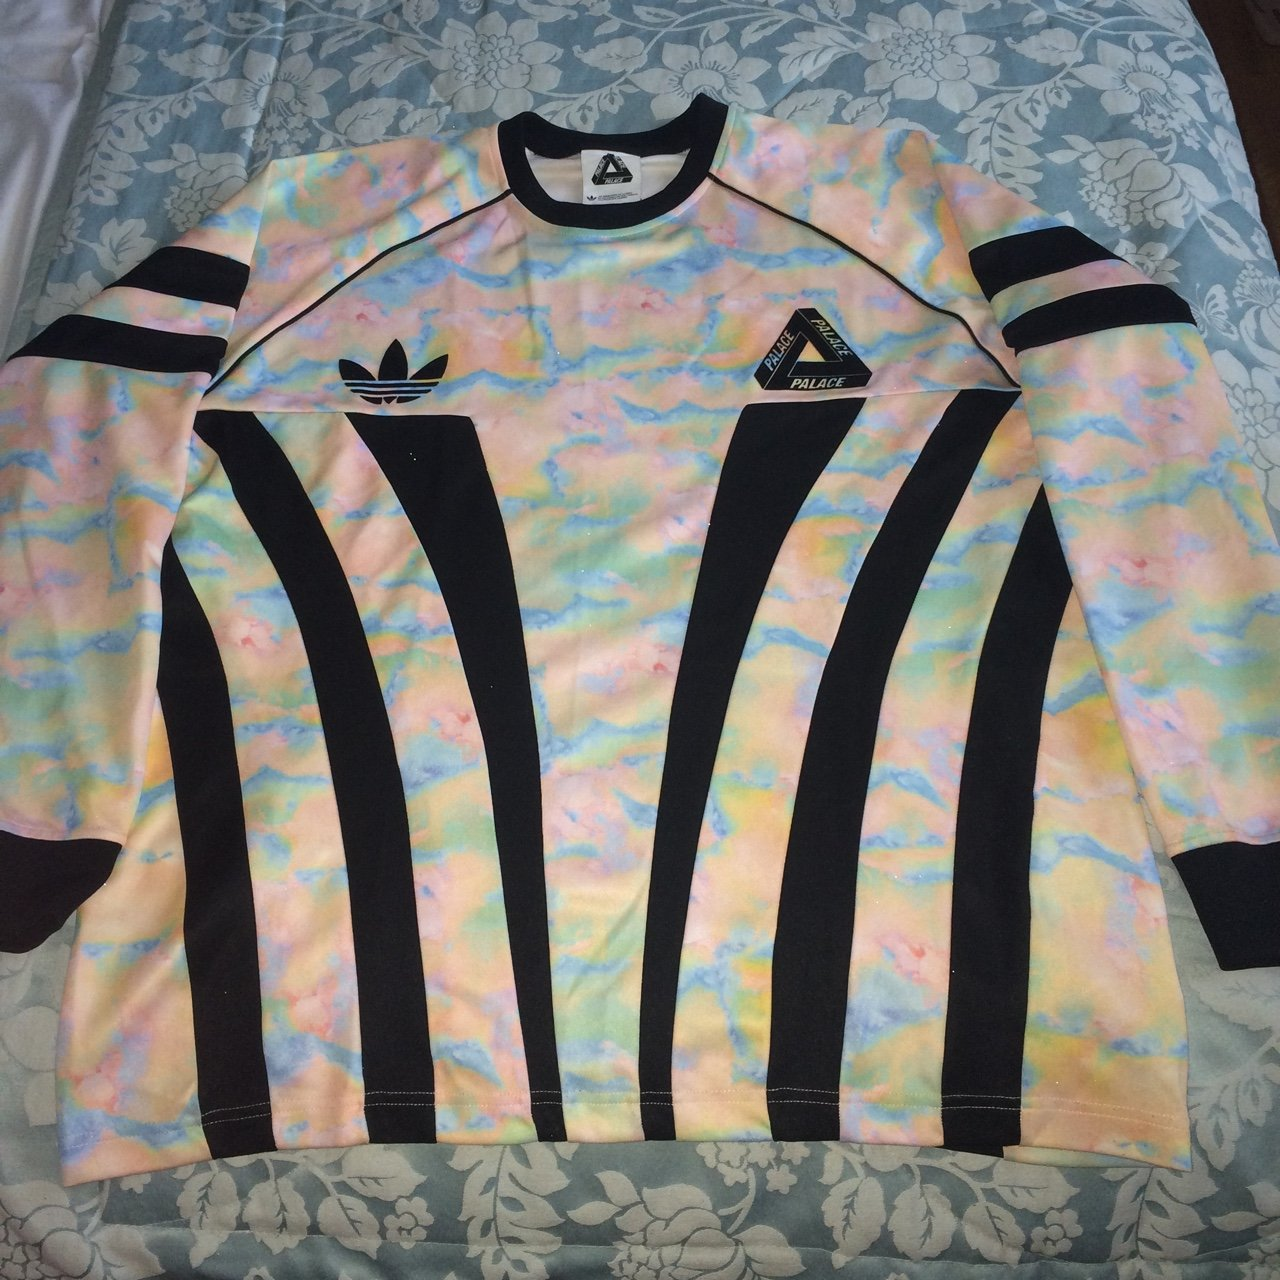 ed66148dc15 Palace x Adidas goalie top - 8 10 condition barely worn - of - Depop